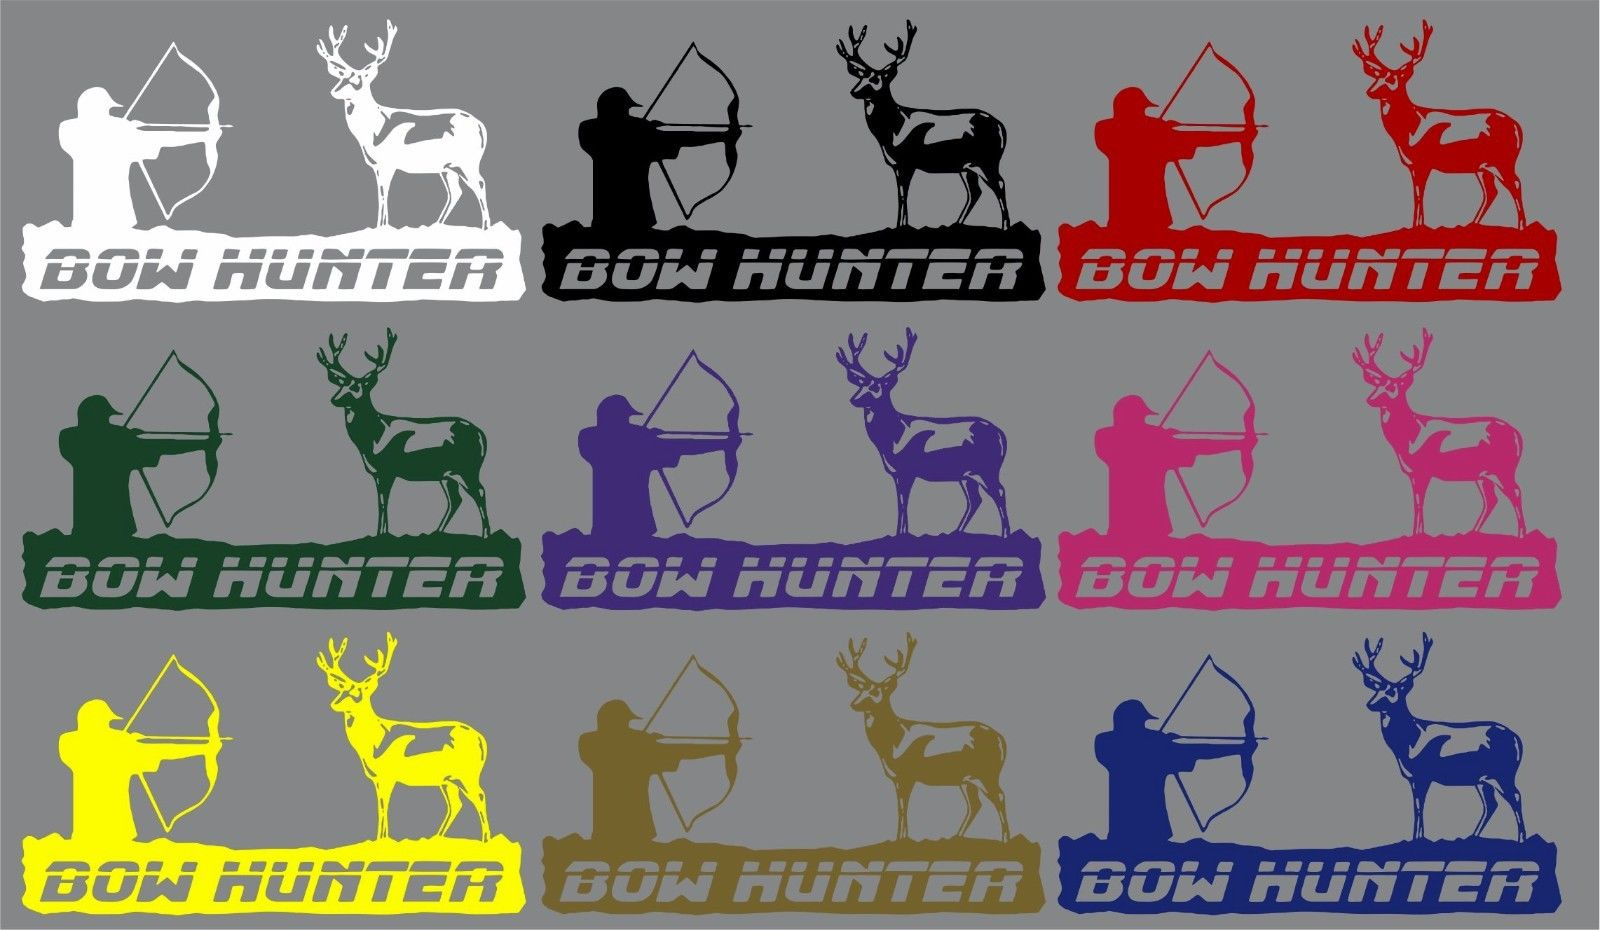 "Bow Hunter Deer Archery Hunting Car Truck Window Laptop Vinyl Decal Sticker - 11"" Long Edge"